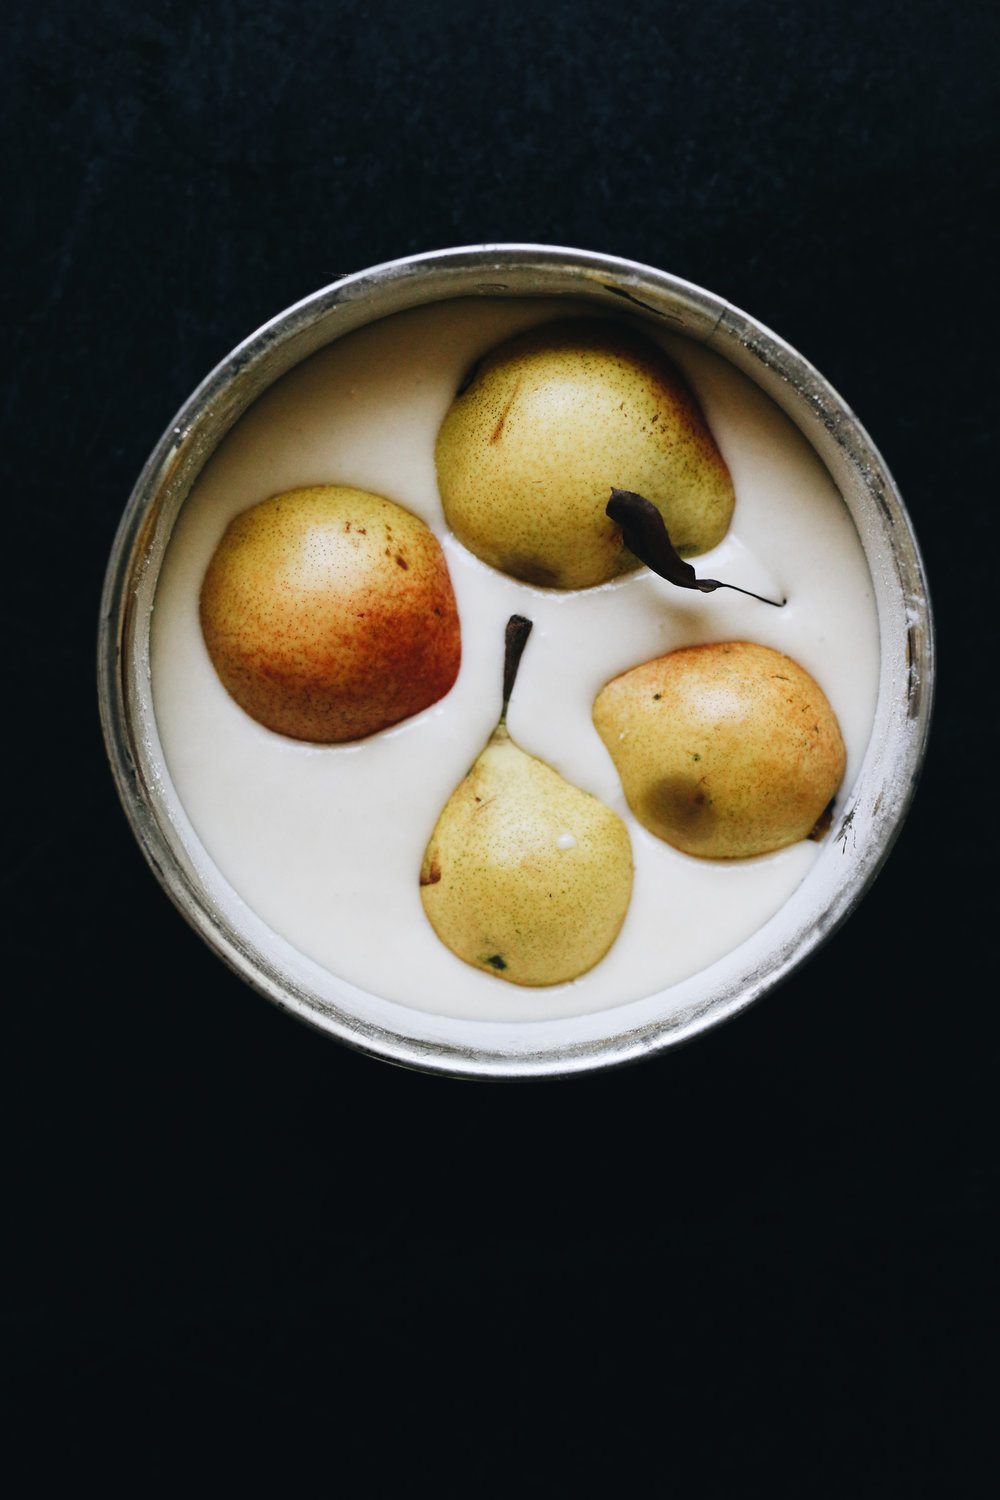 pear+cake+(1+of+8)